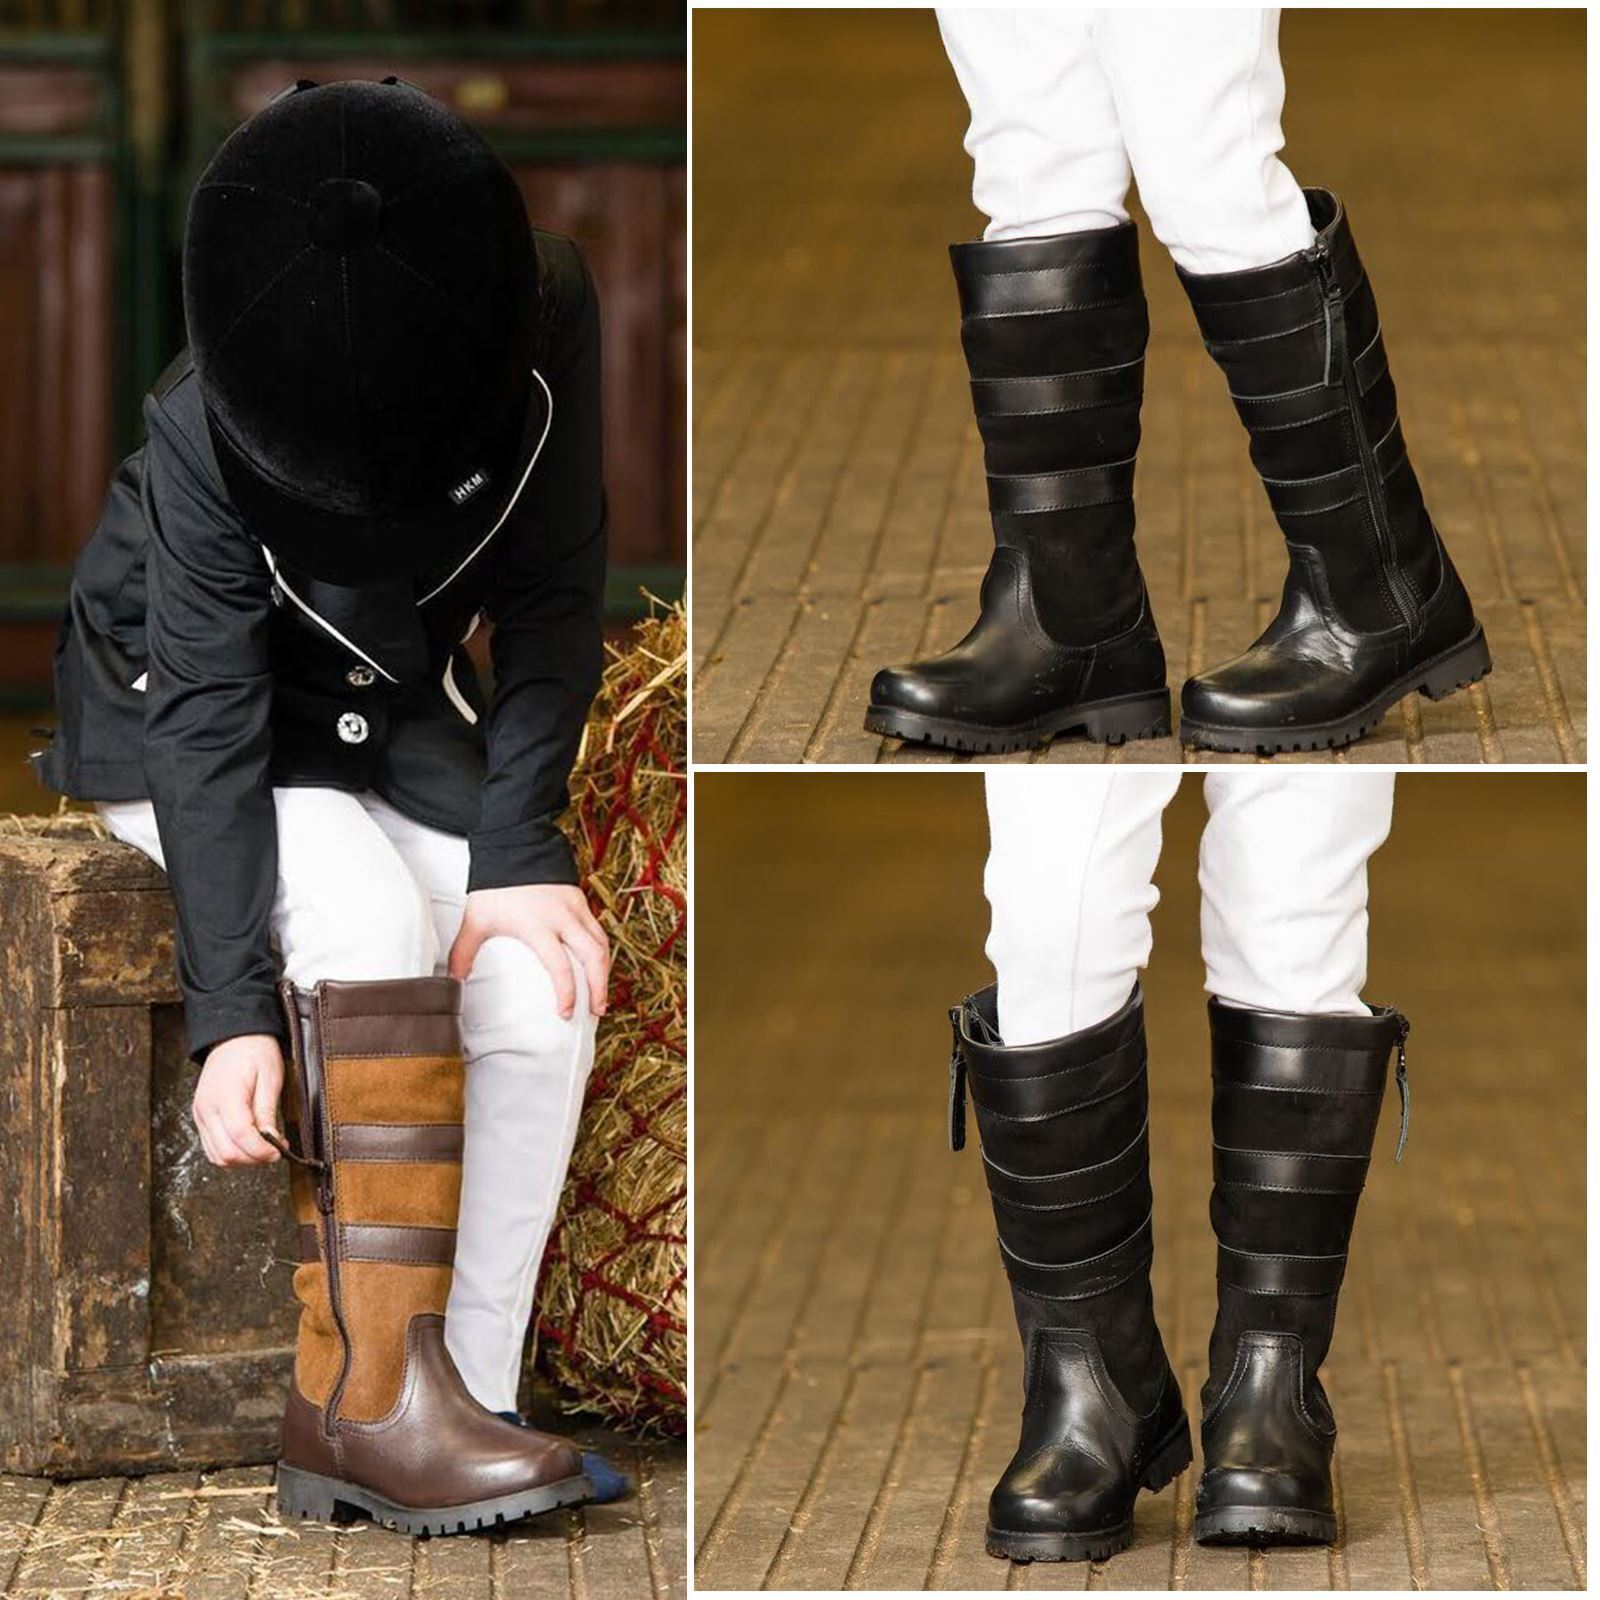 Ladies Kids Horse Riding Long Waterproof Leather Walking  Outdoor Boots All Sizes  outlet online store